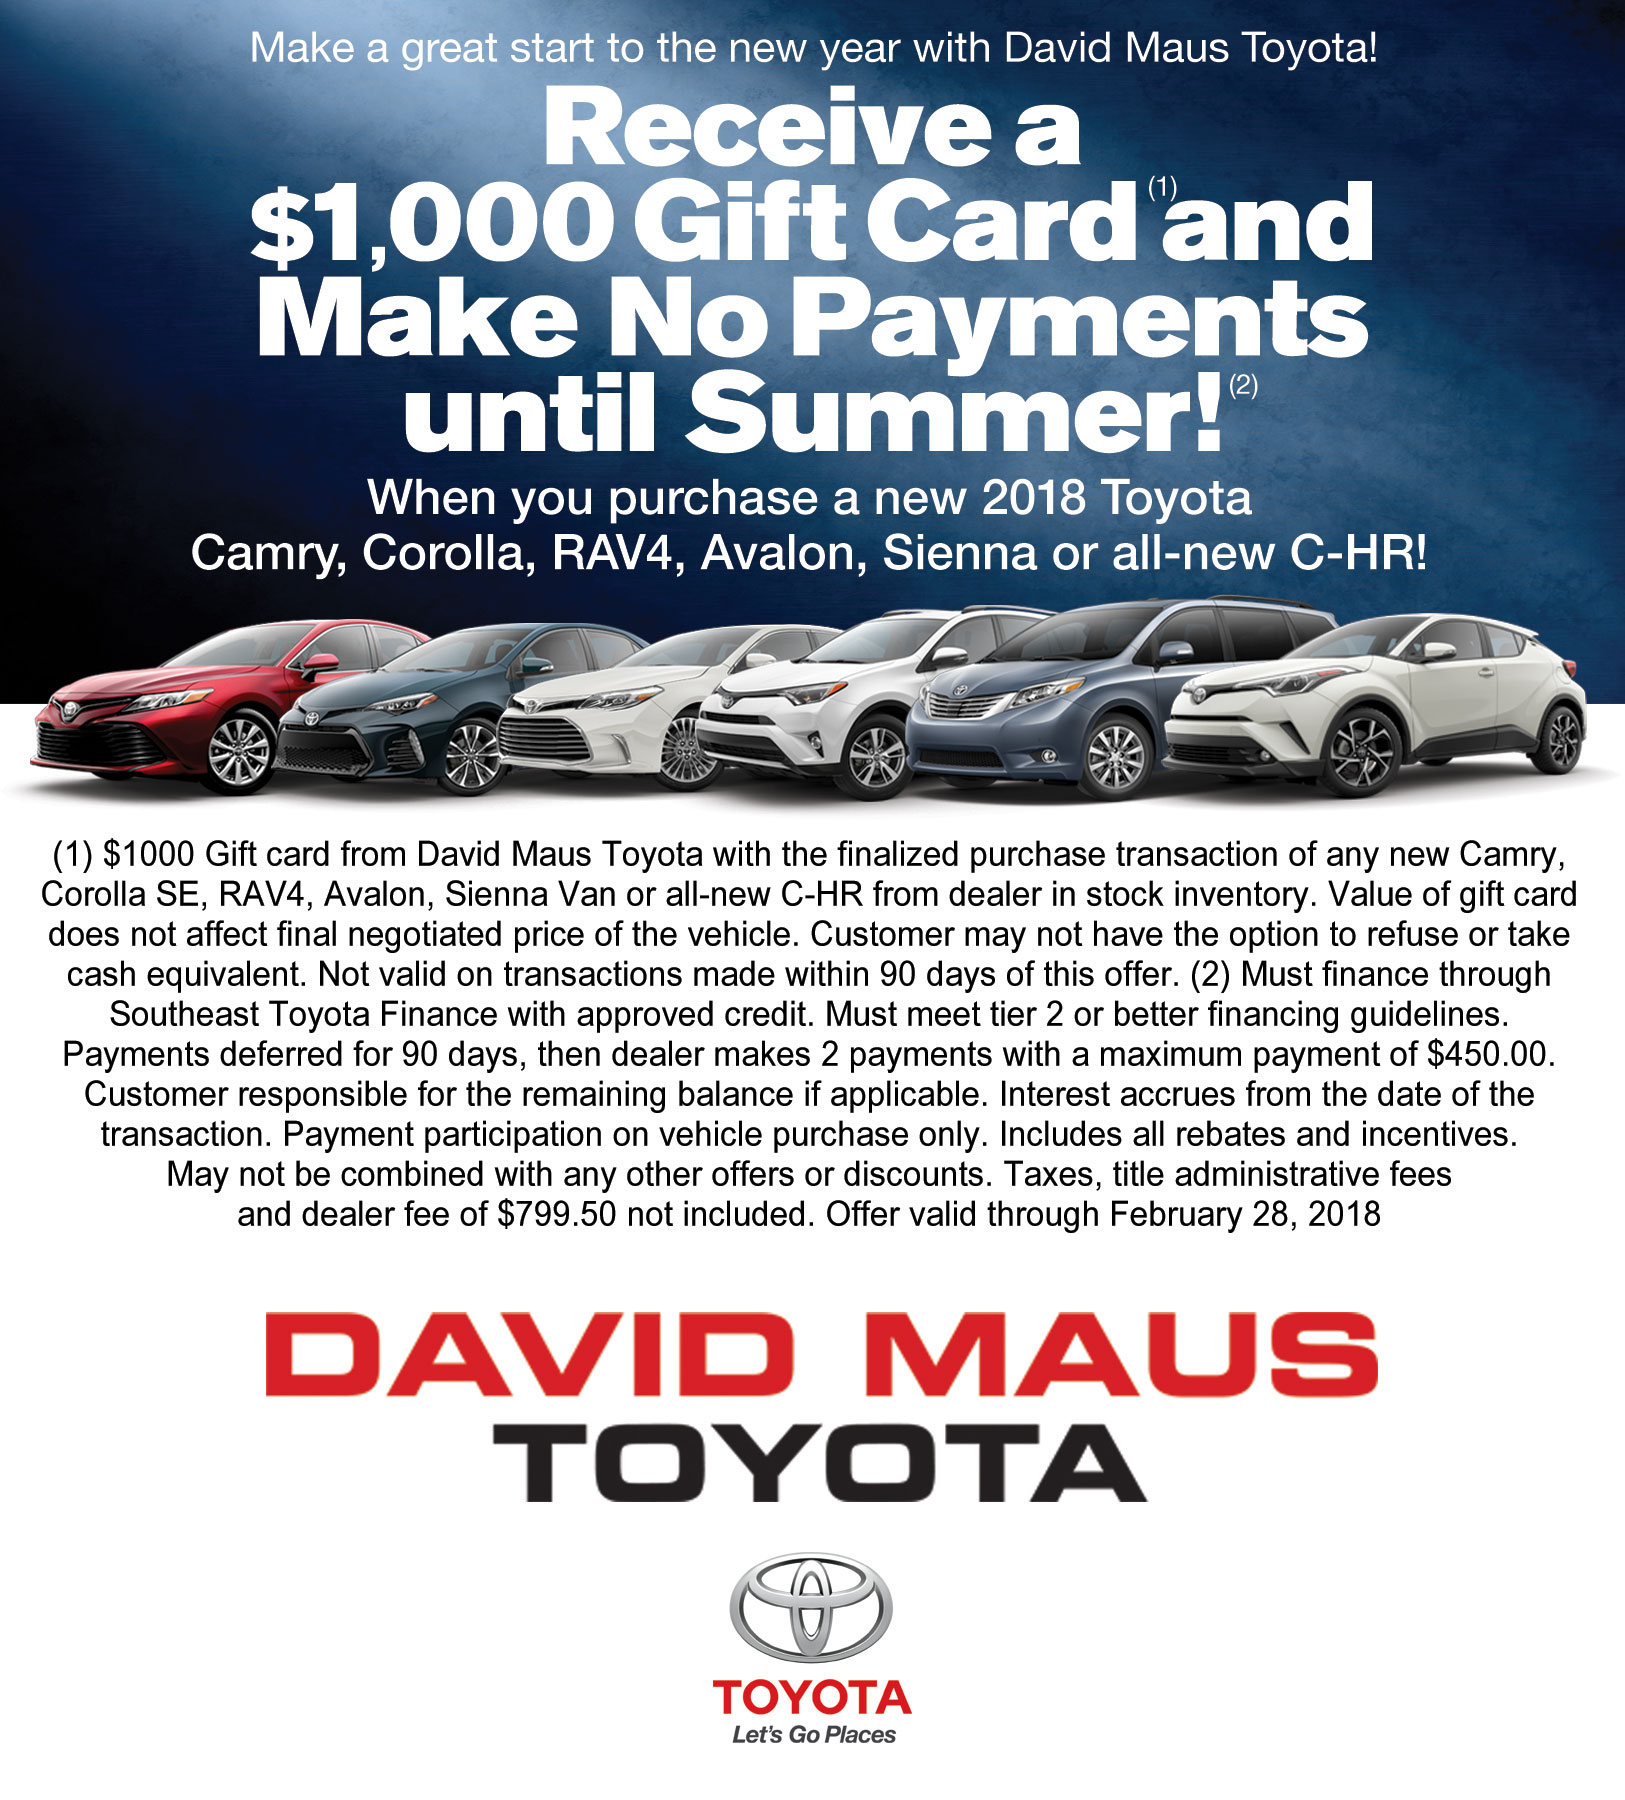 Receive A $1,000 Gift Card And Make No Payments Until Summer!